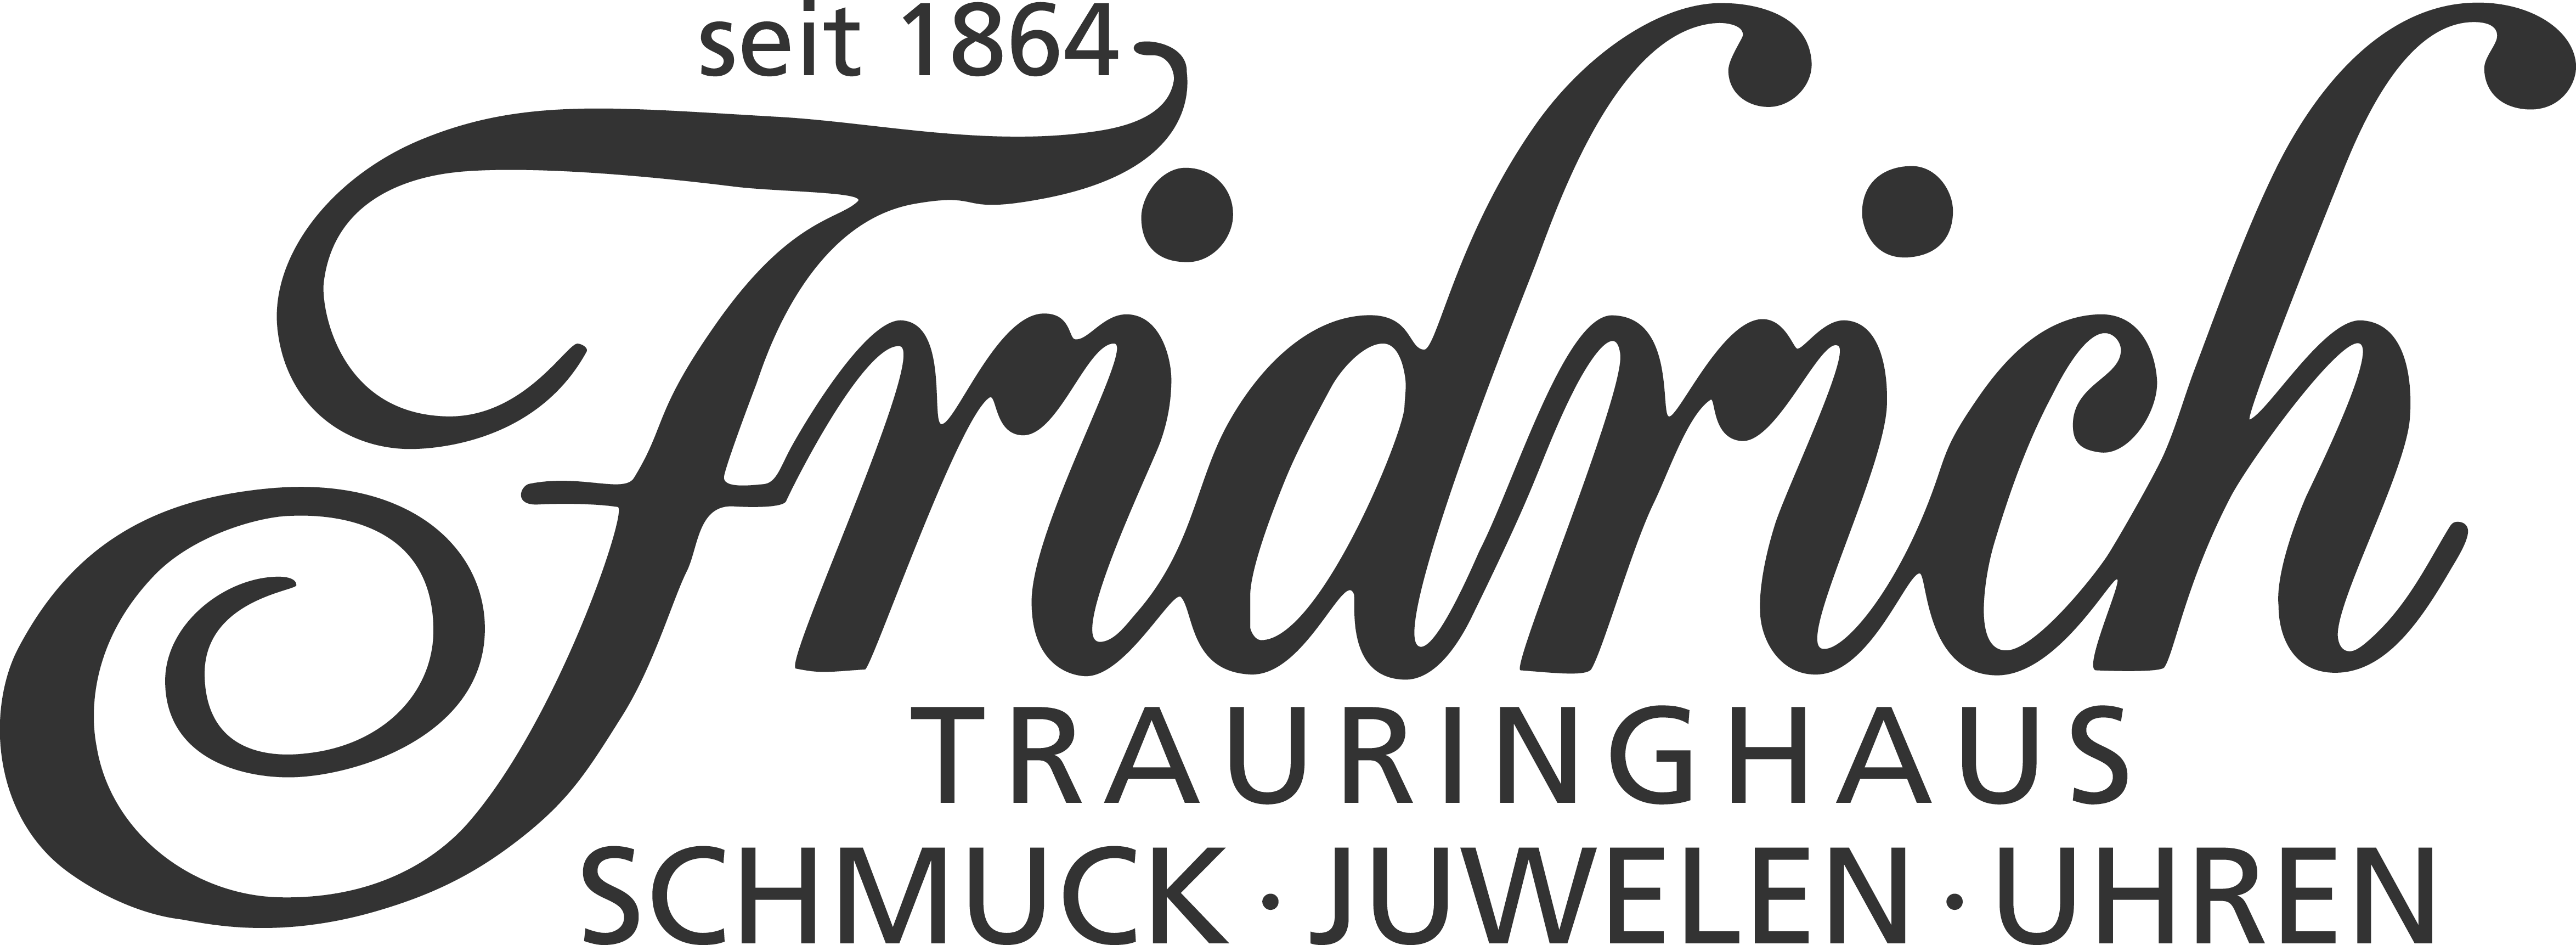 J.B. Fridrich GmbH & Co. KG